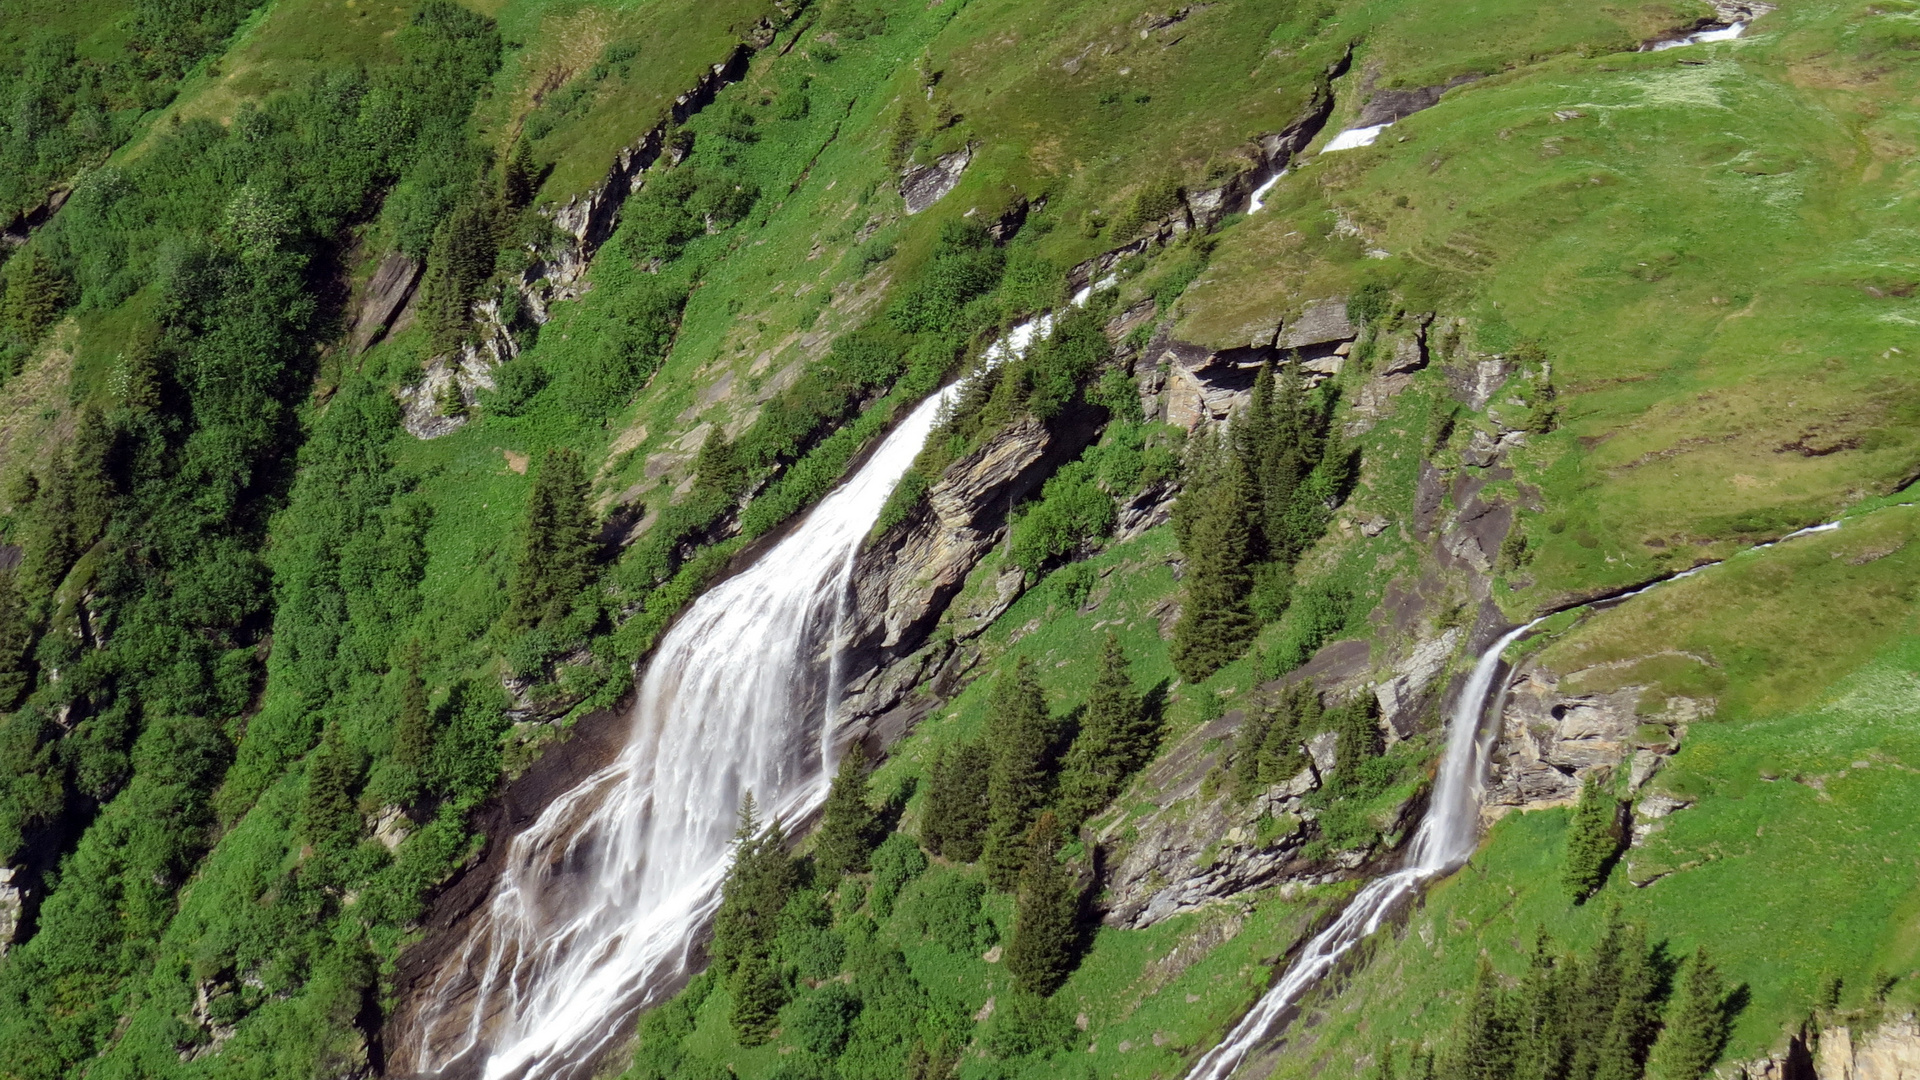 Grindelwald-First Wassefall